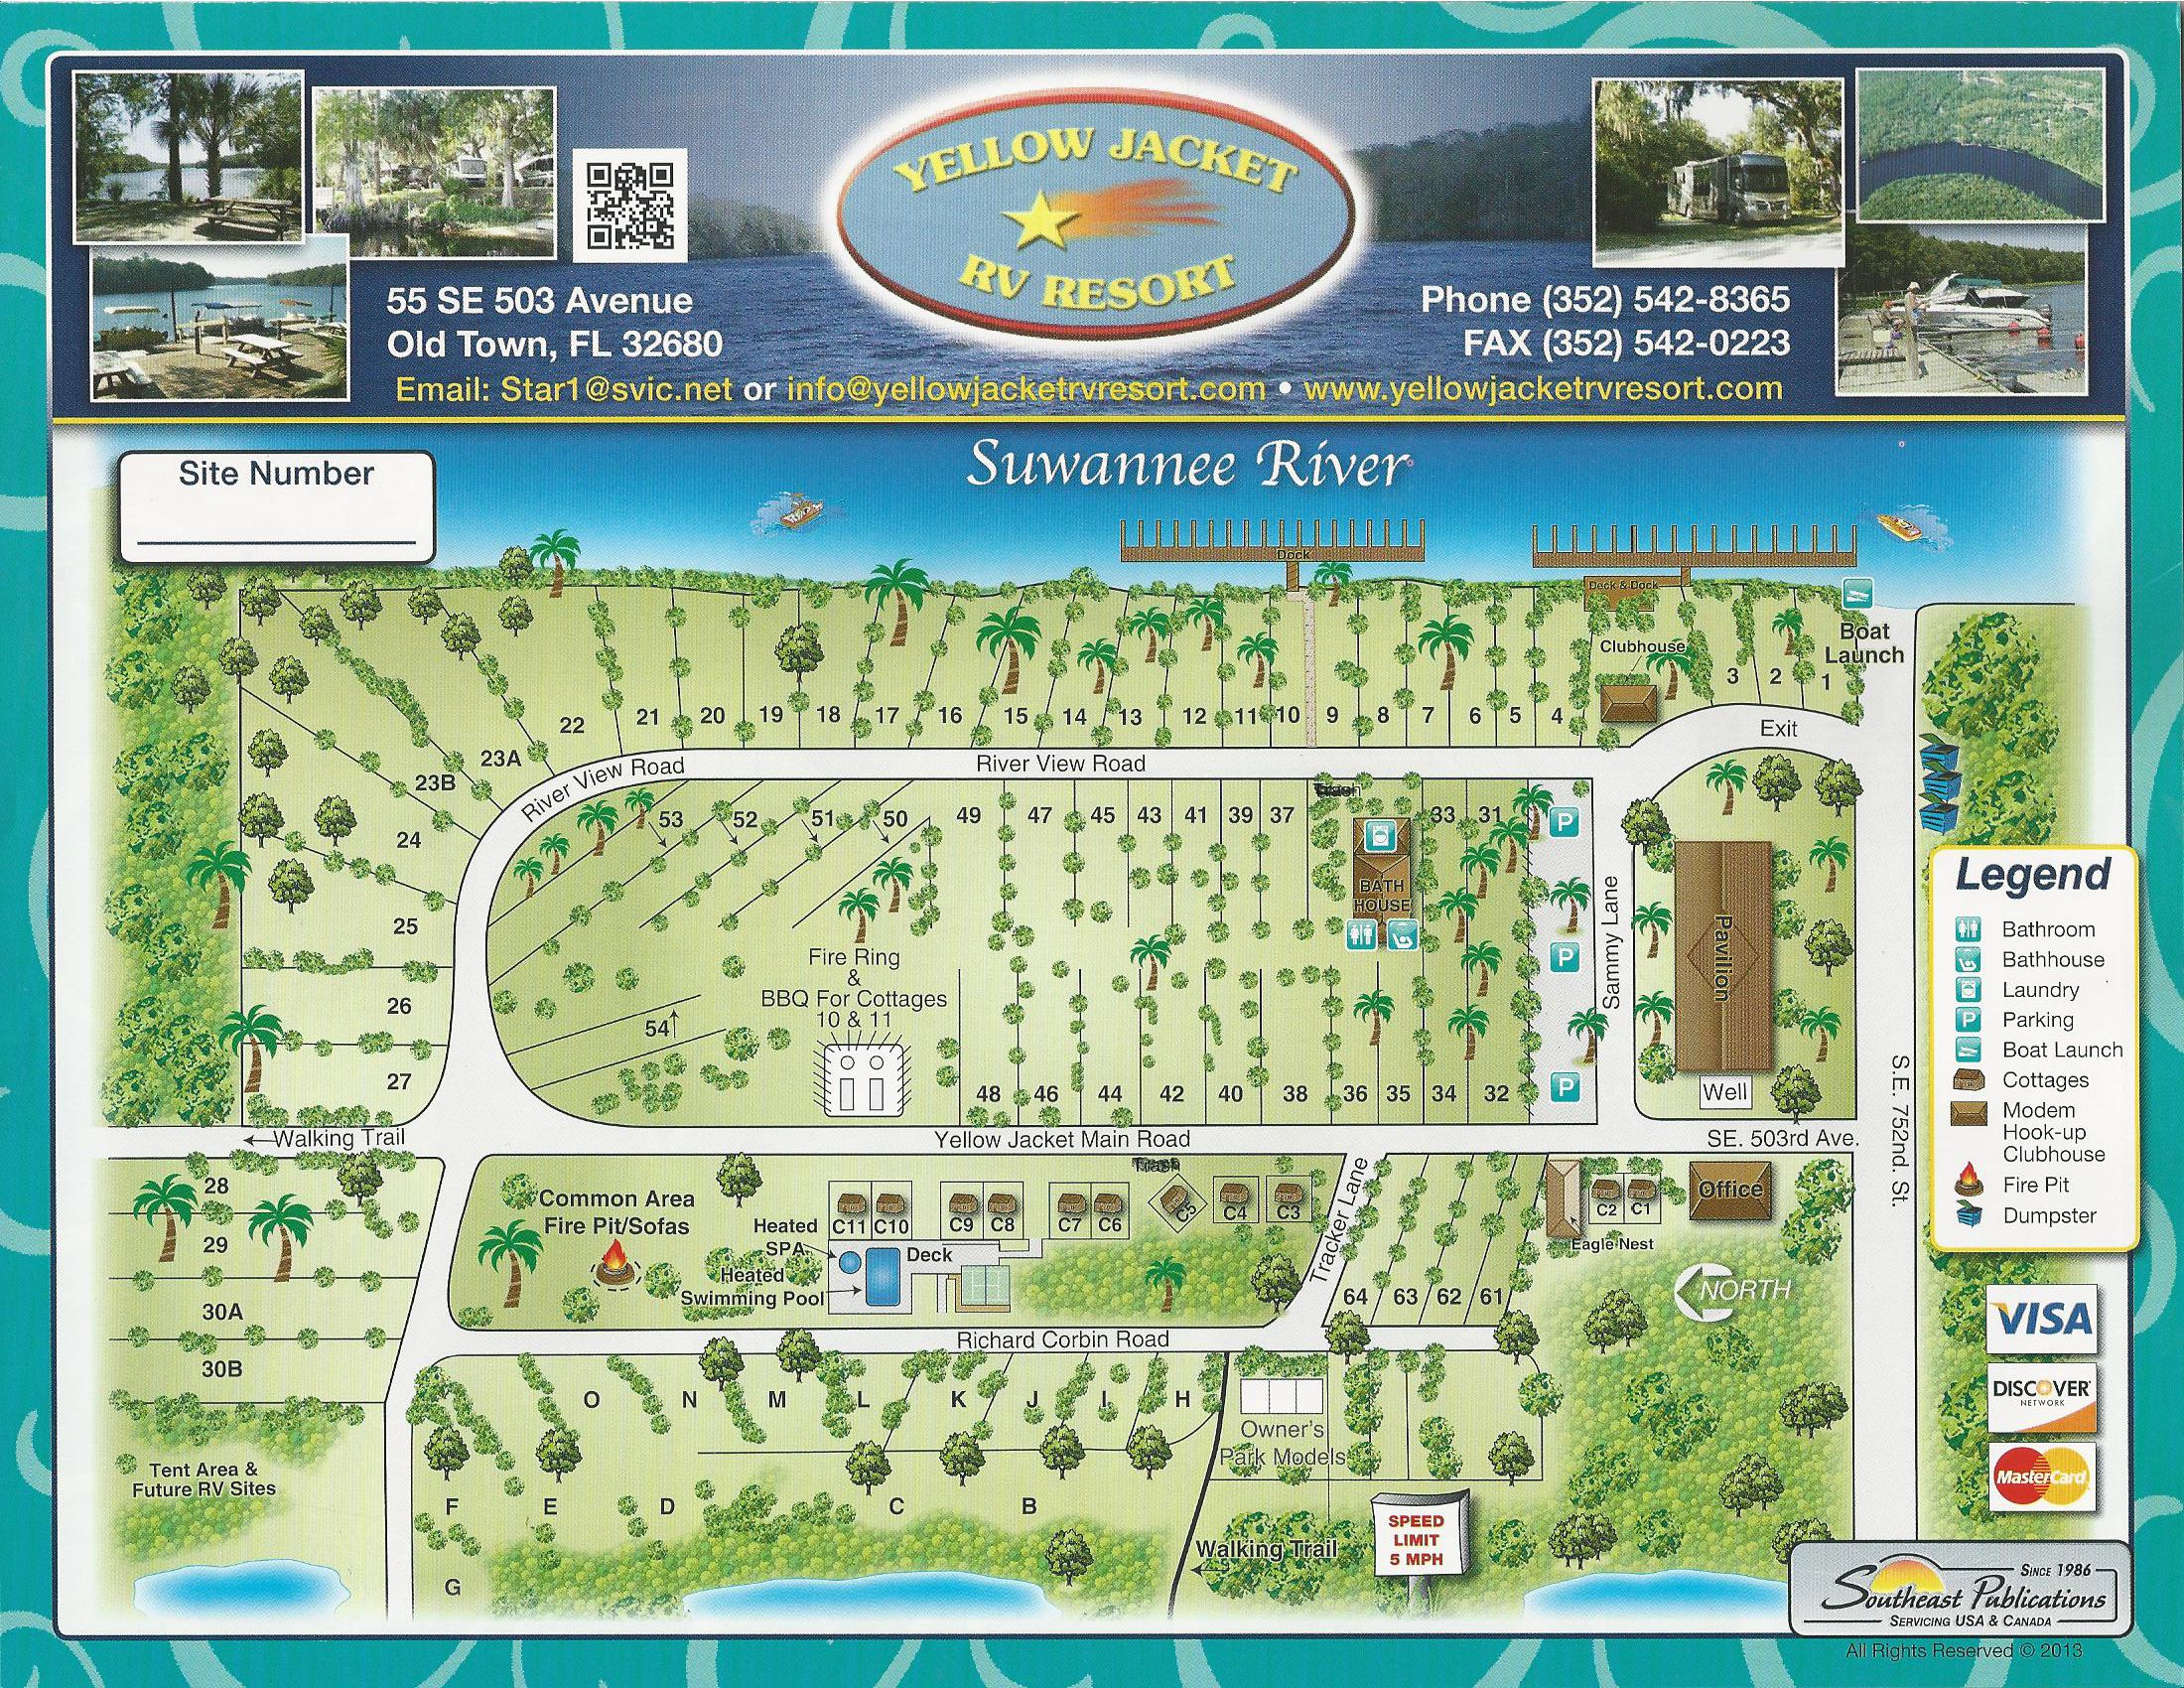 Old Town Florida Map.Yellow Jacket Rv Resort